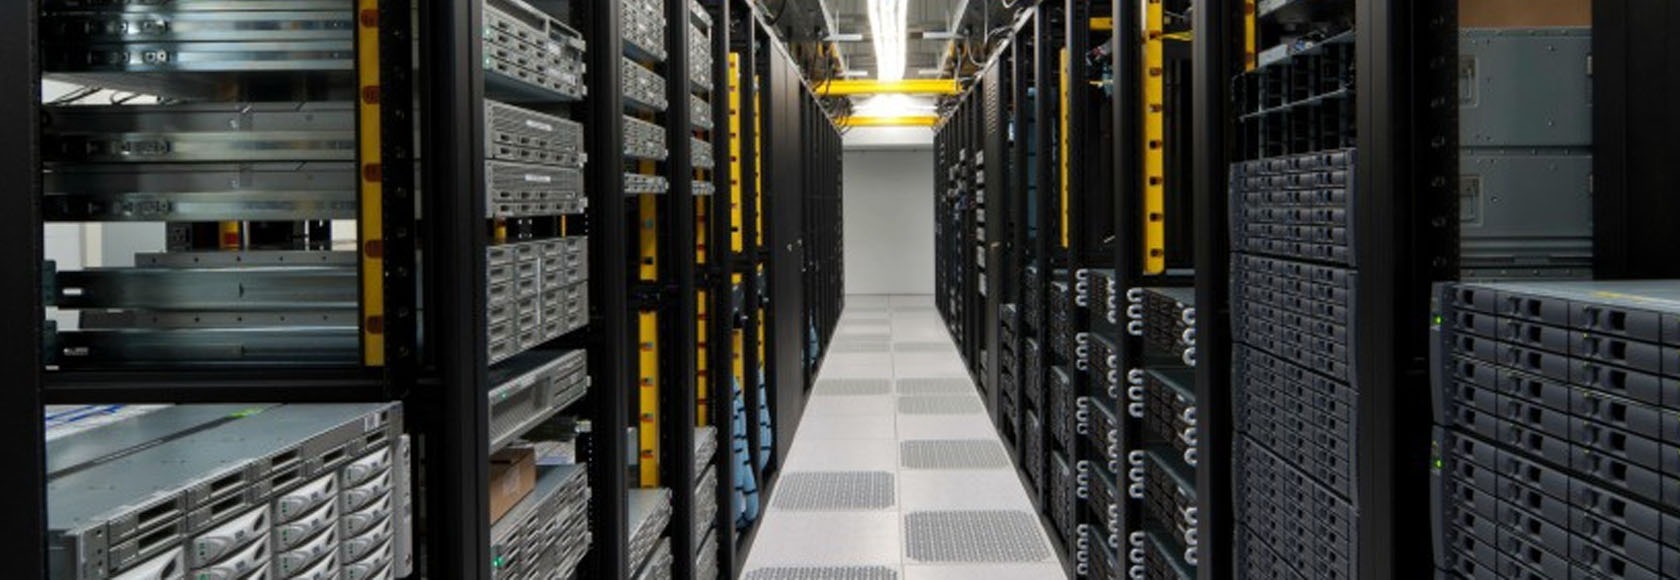 Ons Datacenter